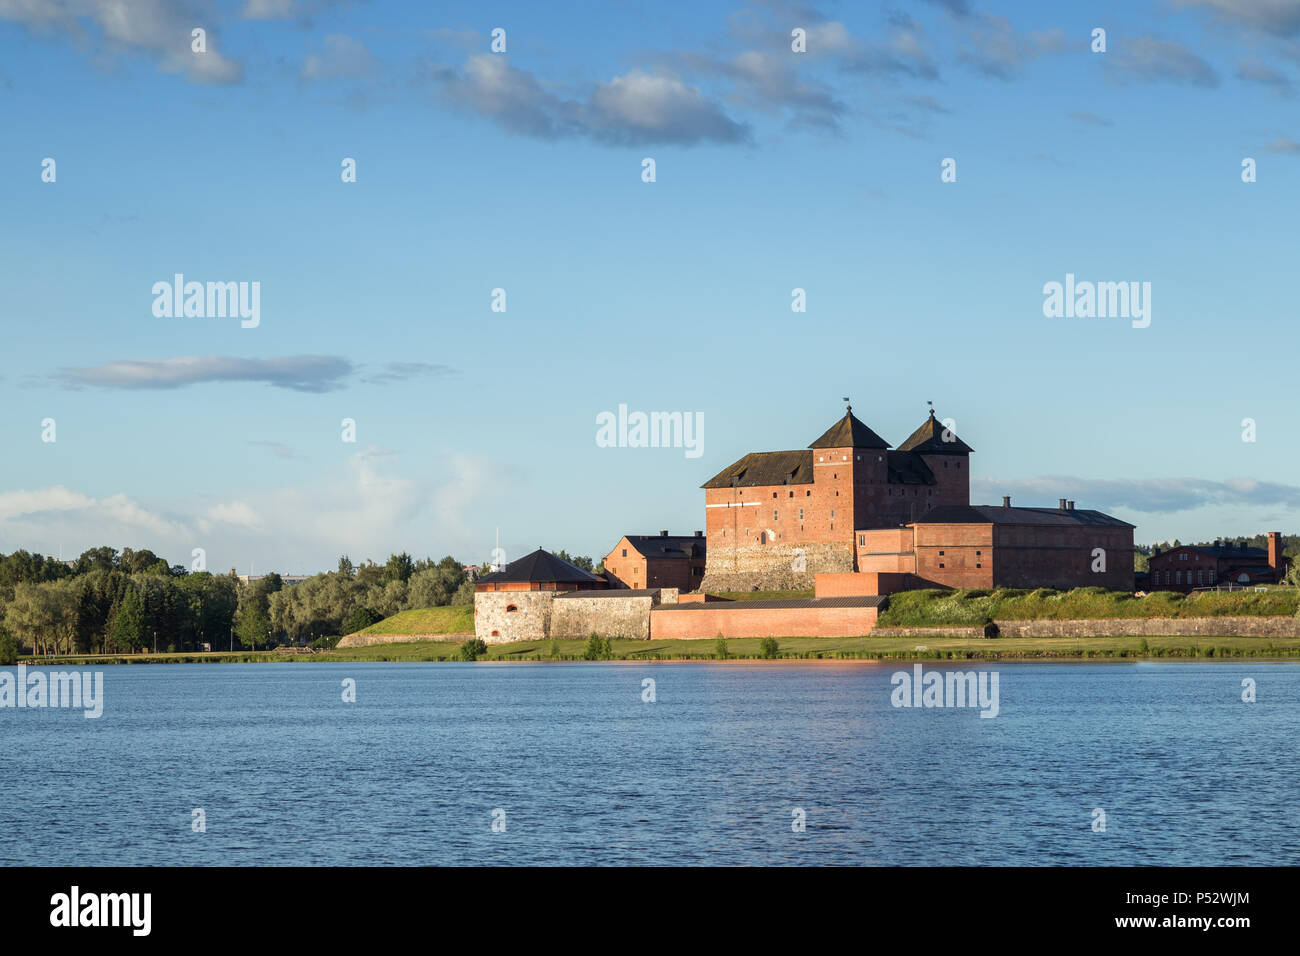 Beautiful view of the 13th century Häme Castle and lake Vanajavesi in Hämeenlinna, Finland, on a sunny day in the summer. Copy space. Stock Photo